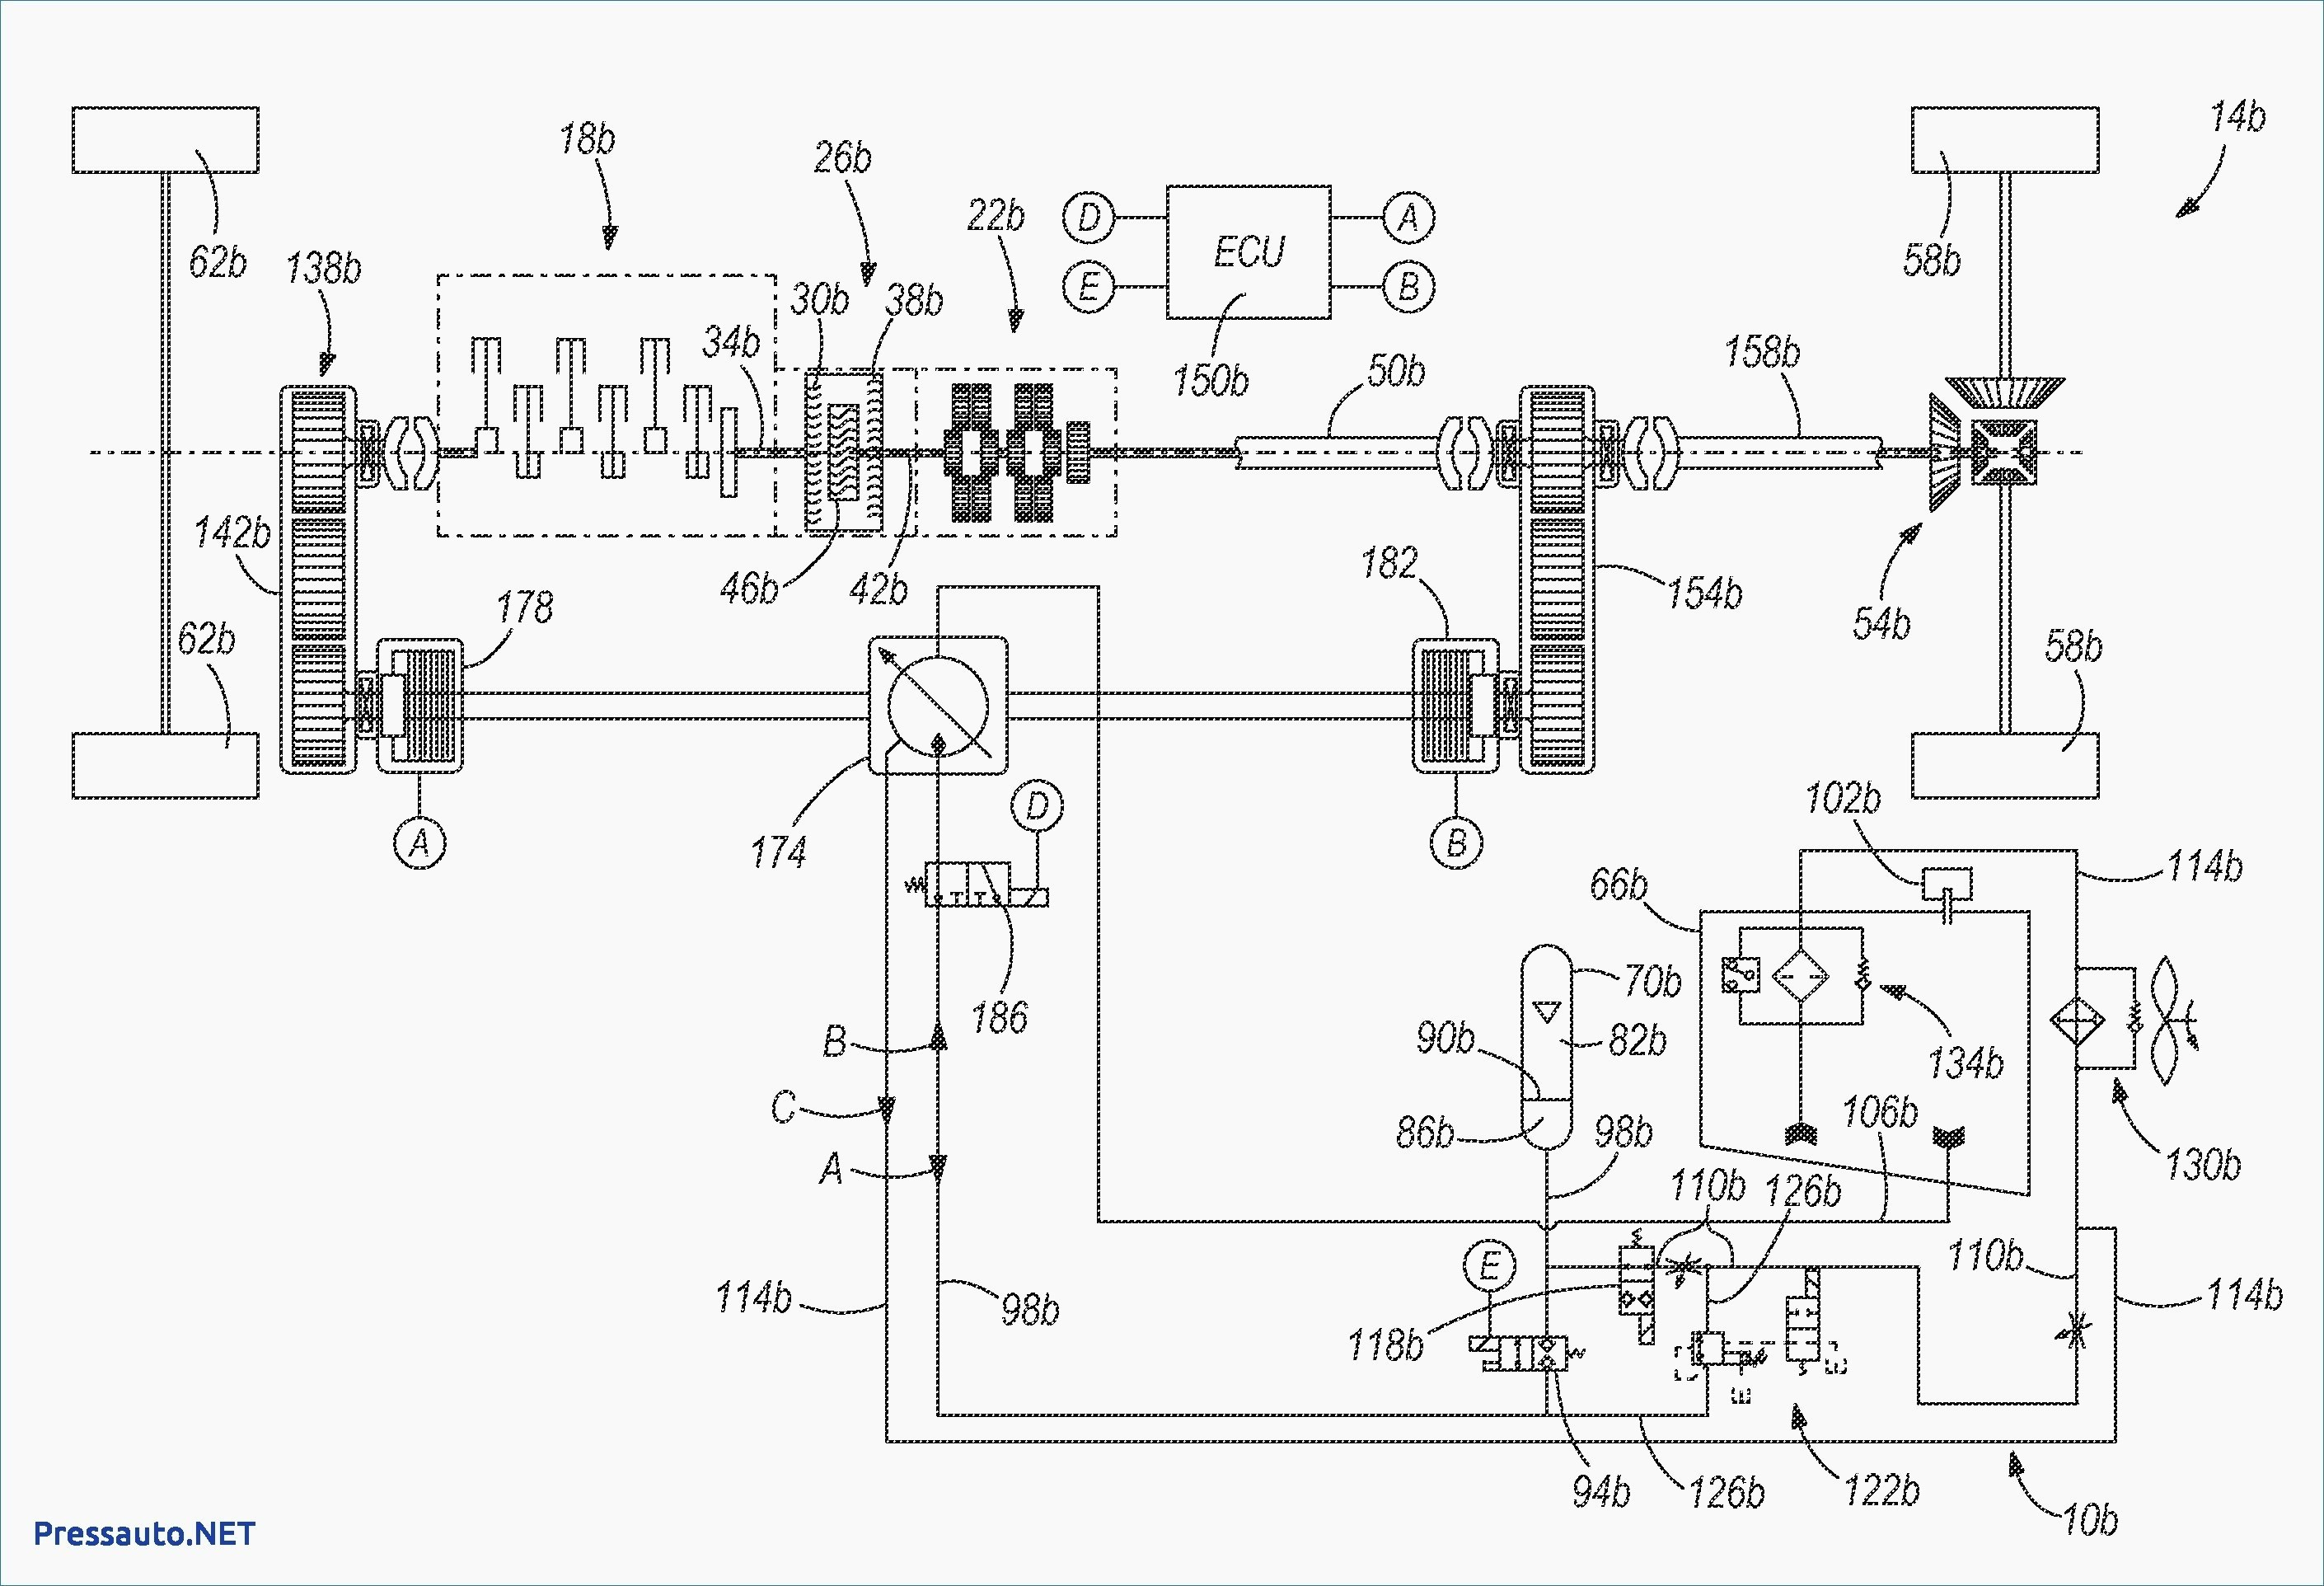 Case Alternator Wiring Diagram - Wiring Diagram Name - Alternator Wiring Diagram Internal Regulator